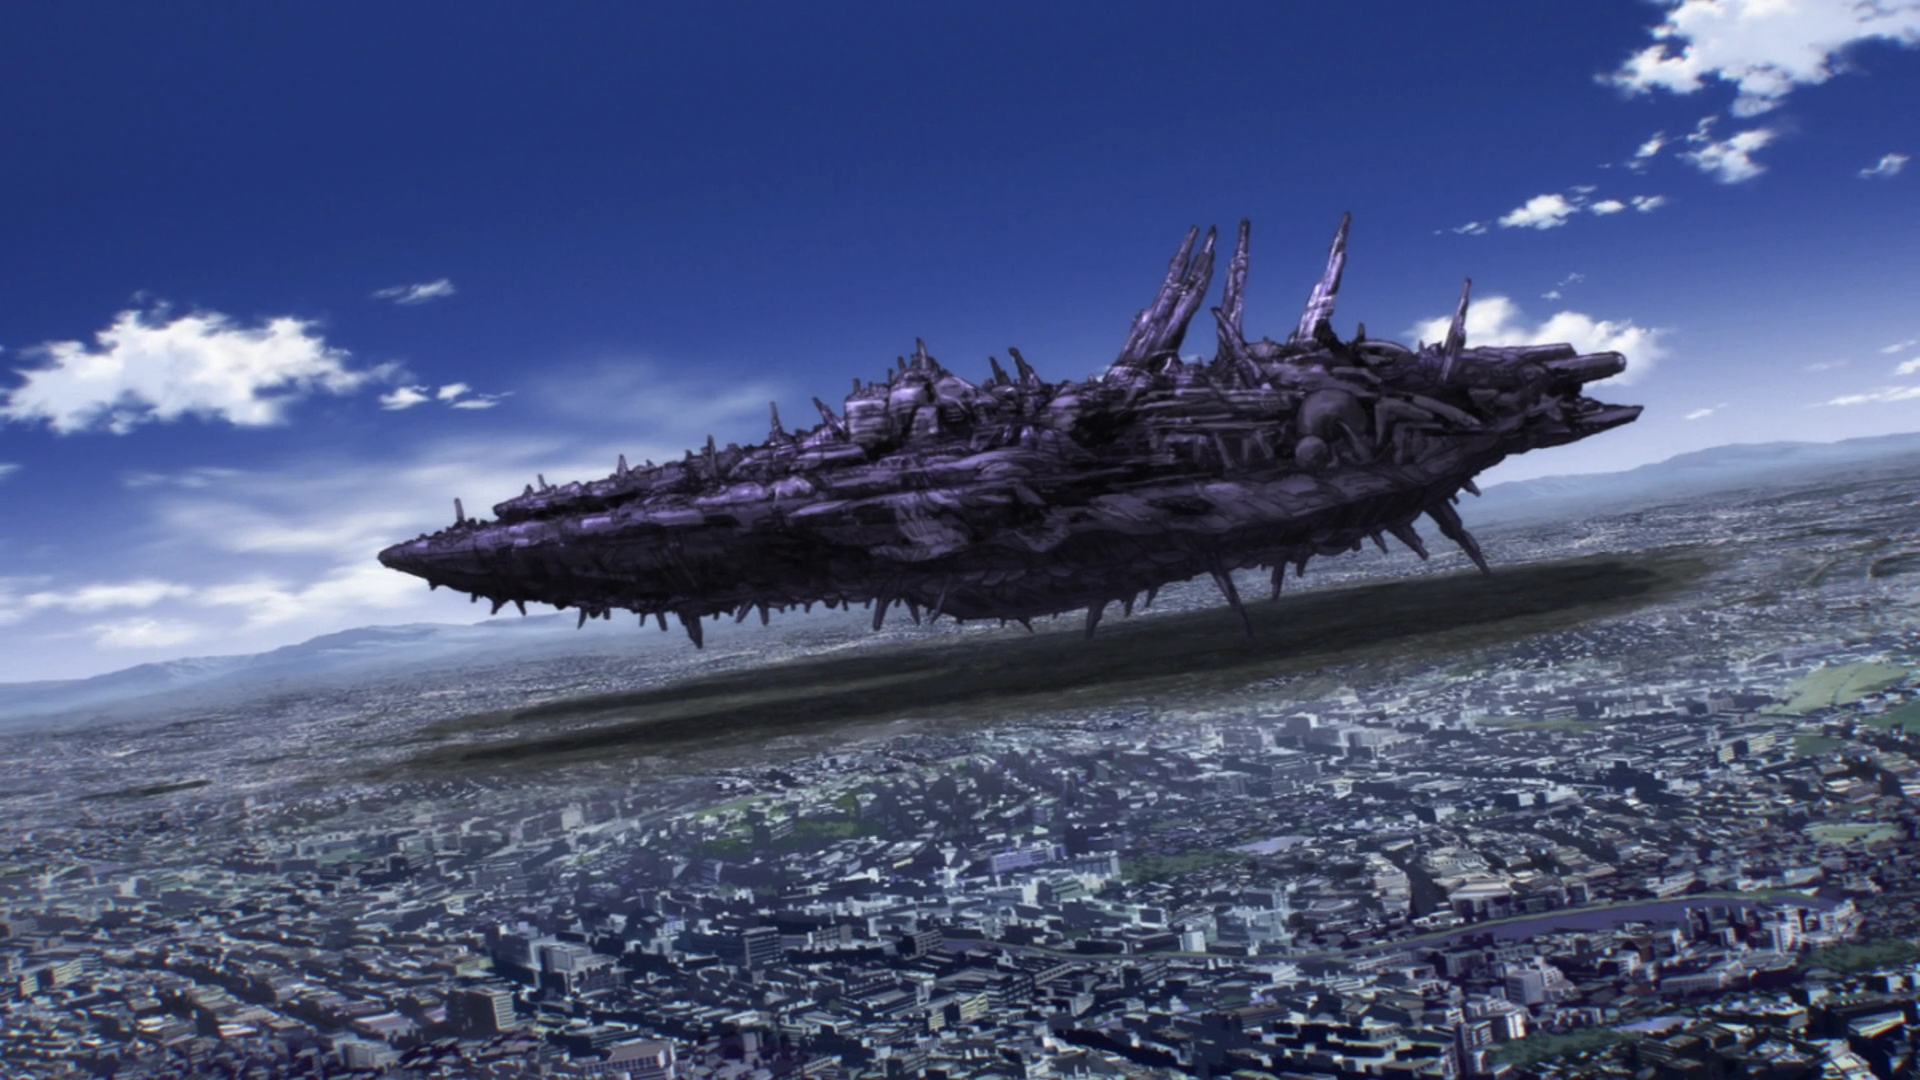 How much of A-city was destroyed by The ship 6